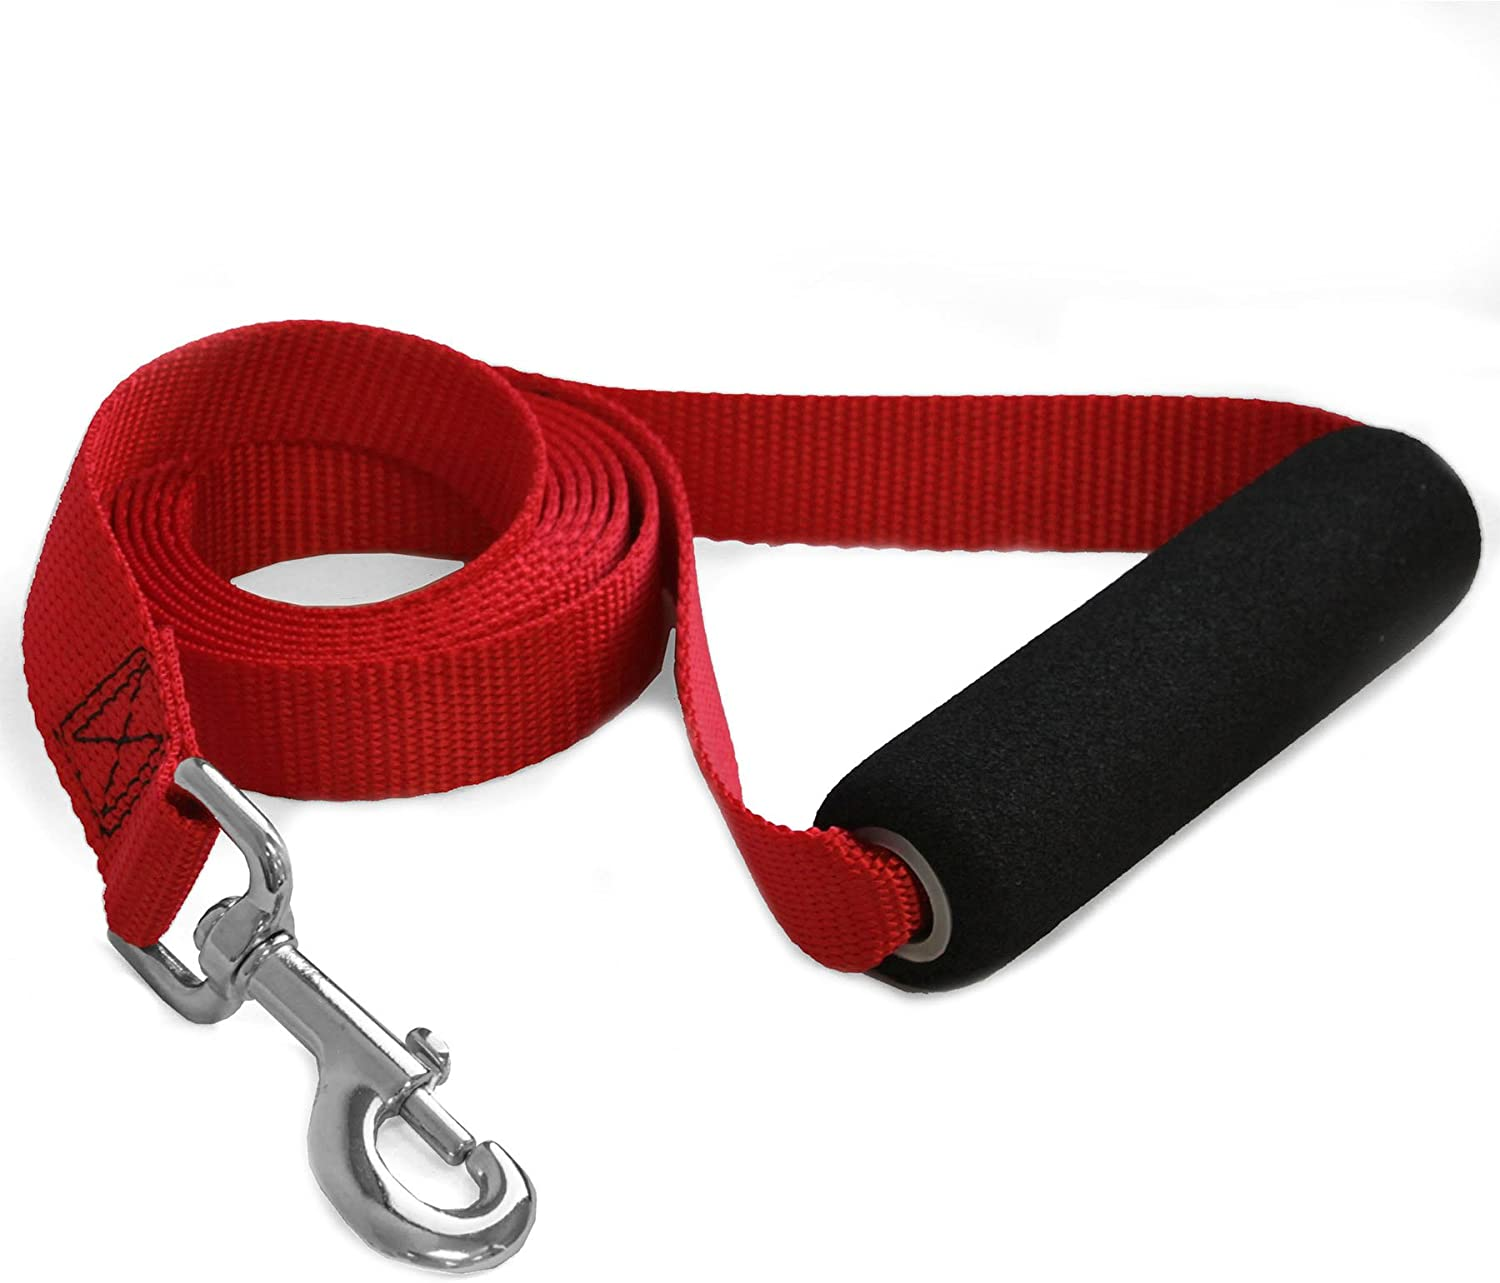 Majestic Pet 1Inch x 4Feet Easy Grip Handle Leash, Red